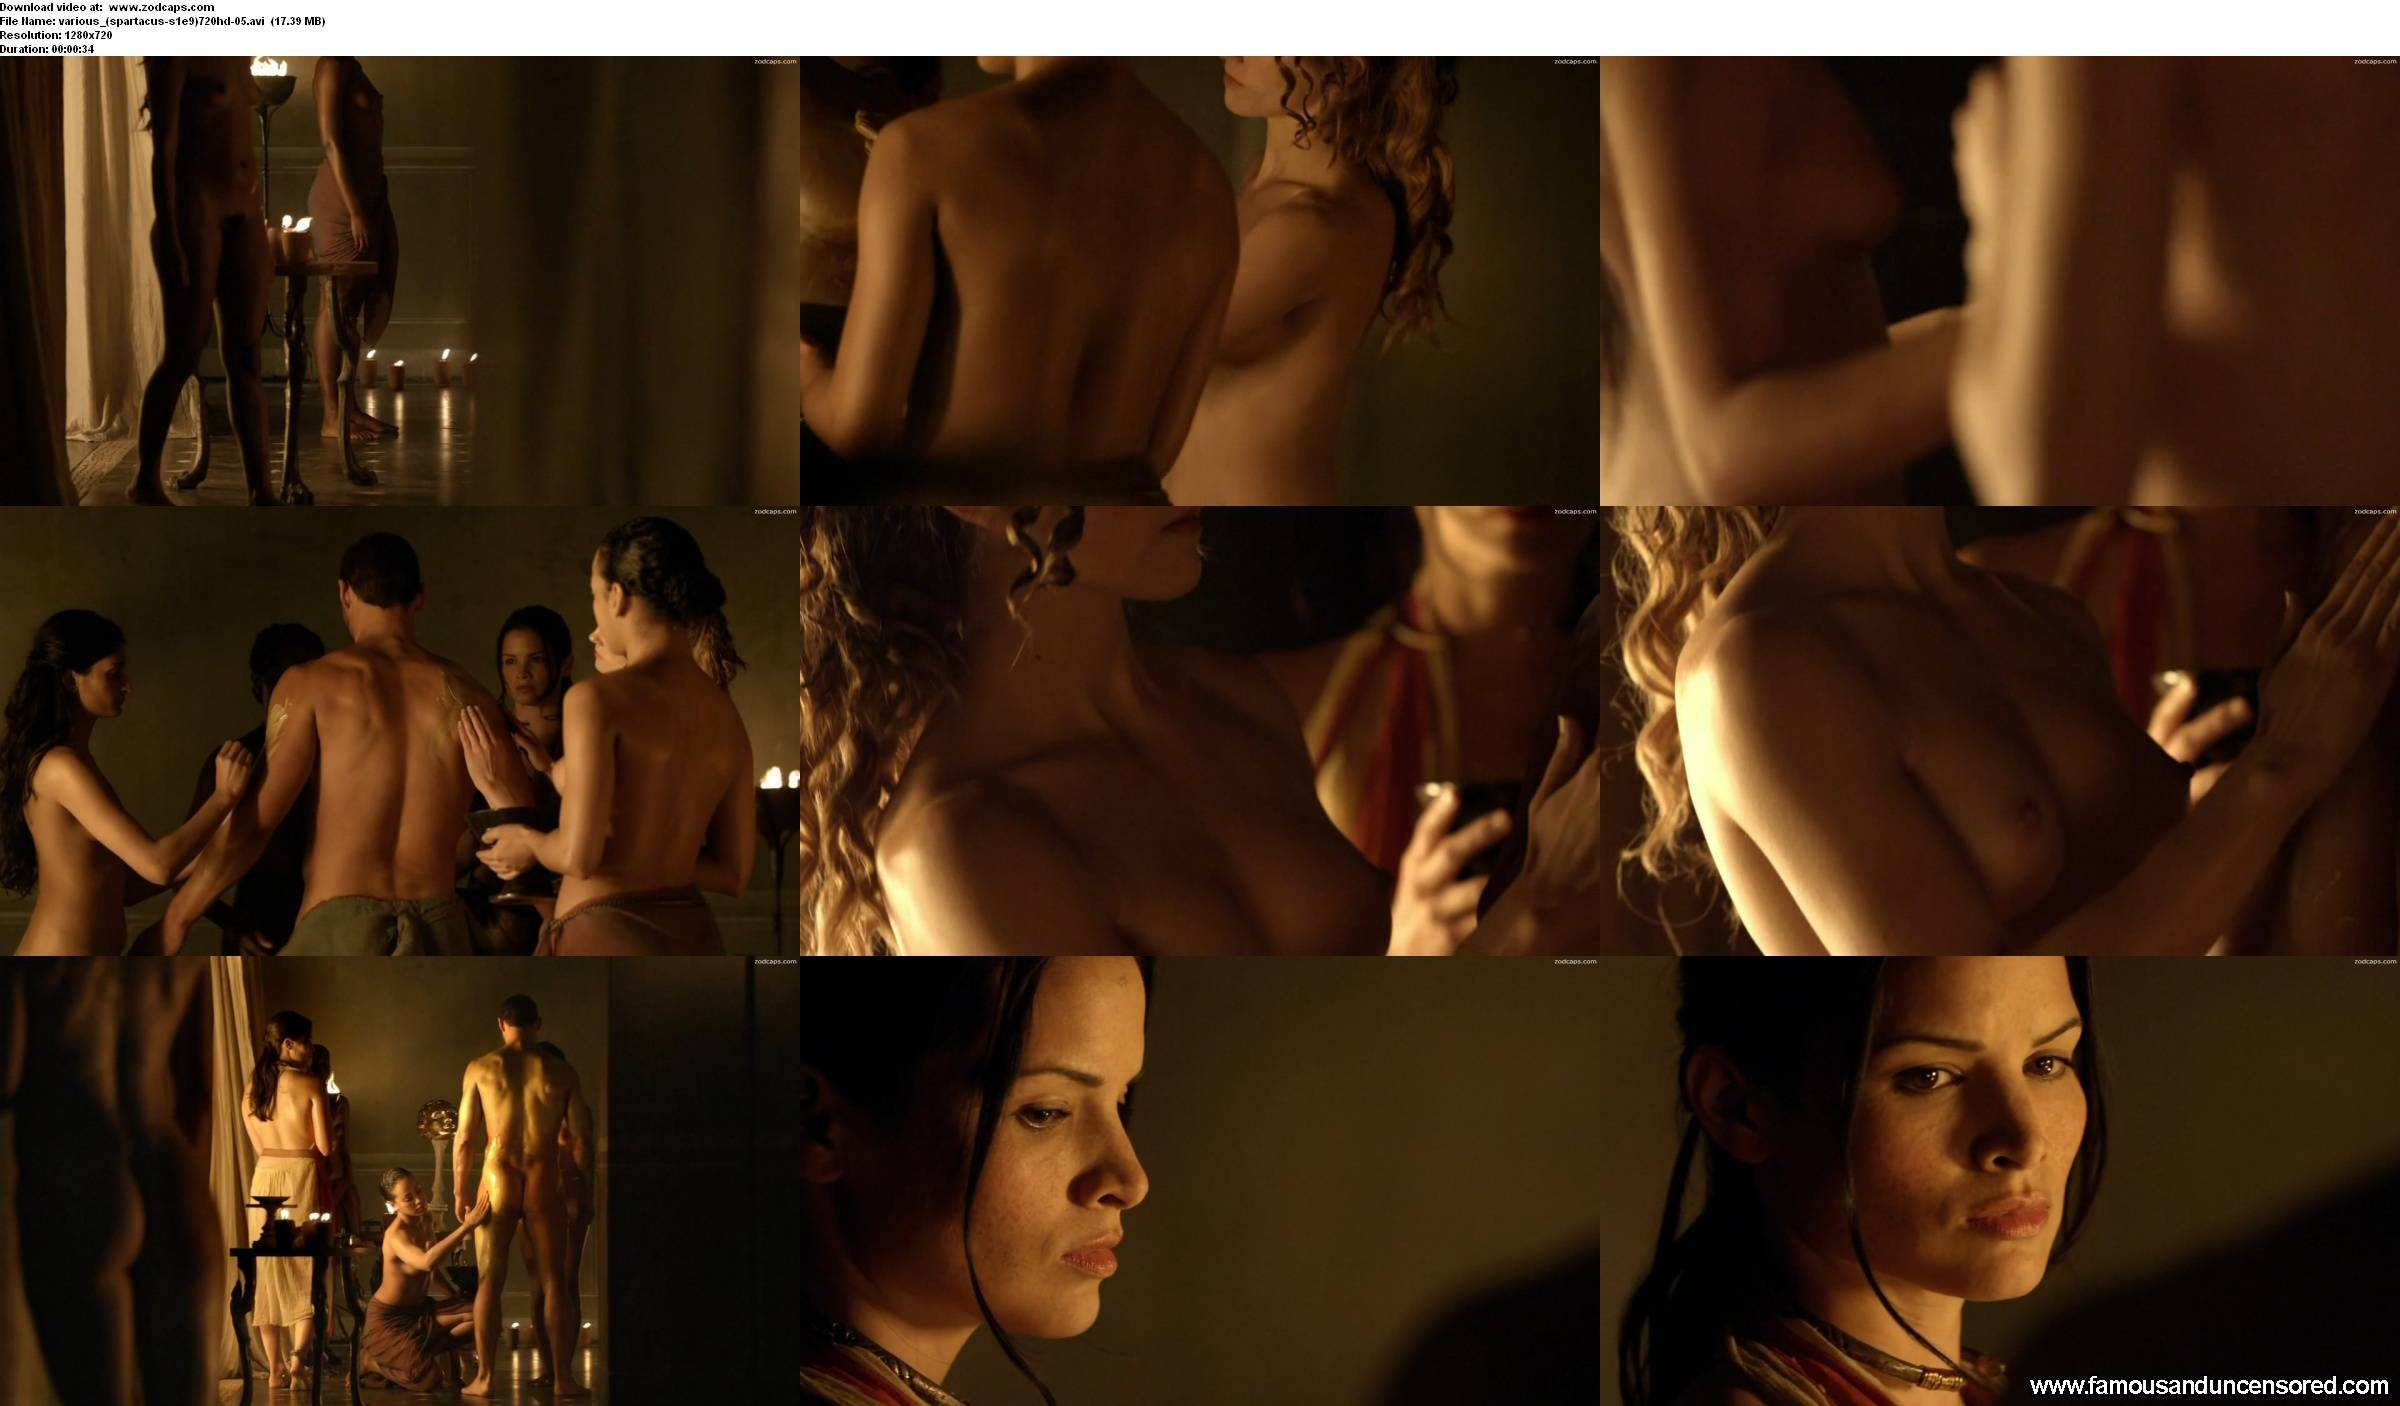 Lucy lawless and jaime murray lesbian sex in spartacus scandalplanetcom